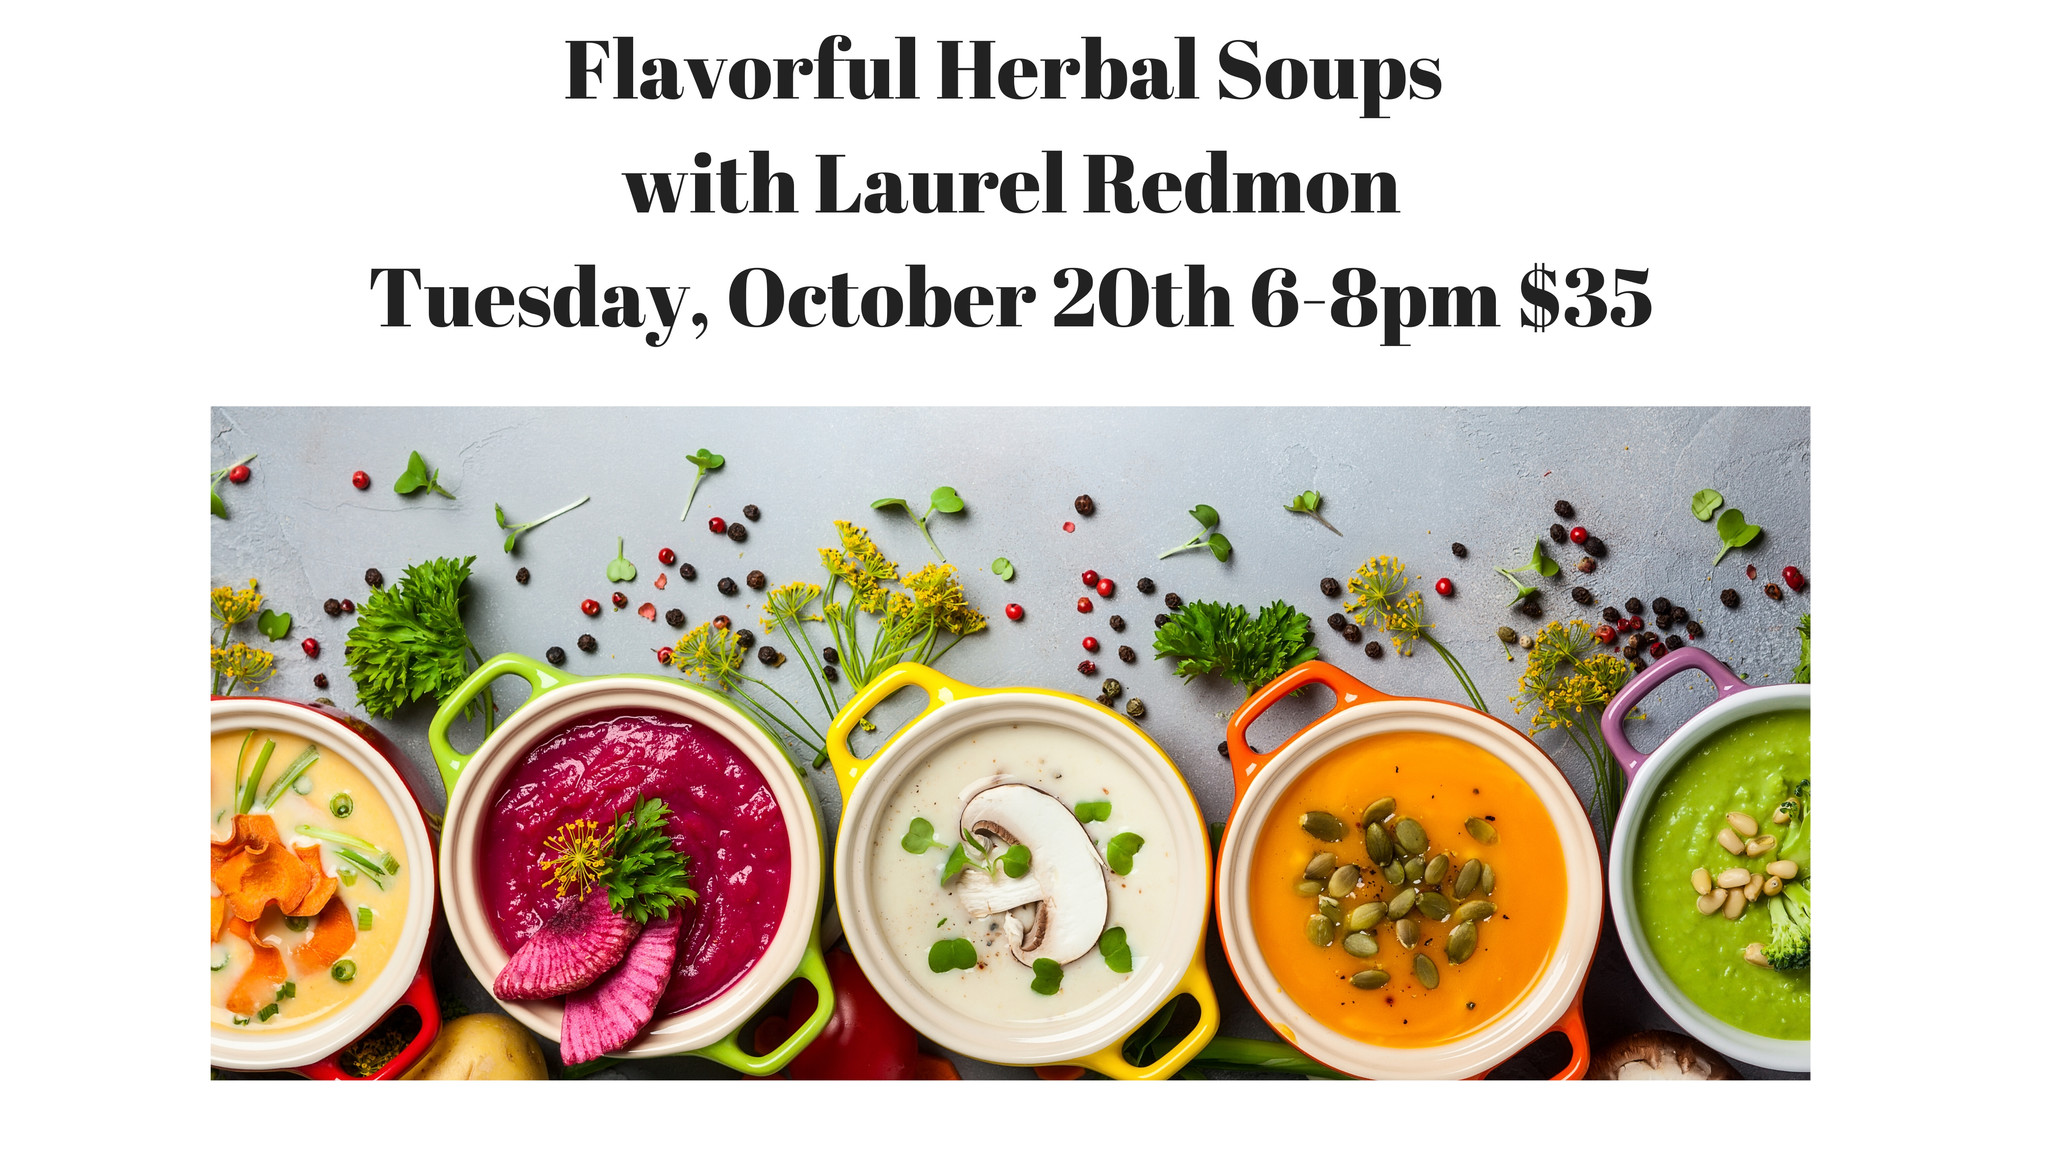 Flavorful Herbal Soups